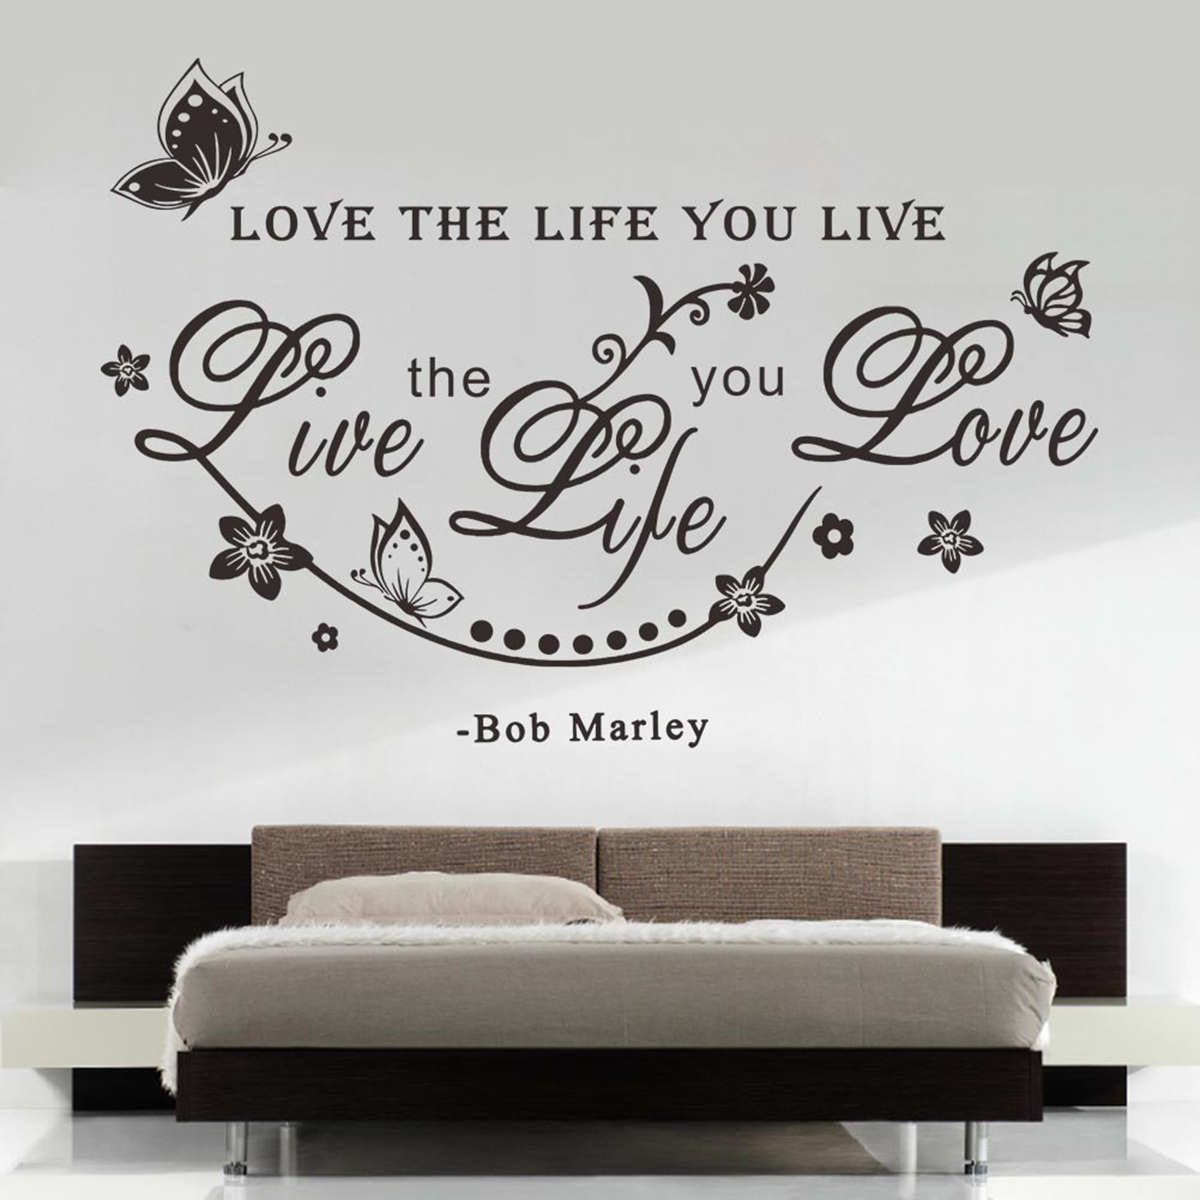 wandtattoo wandsticker wandaufkleber wohnzimmer englisch wort spruch sticker neu ebay. Black Bedroom Furniture Sets. Home Design Ideas